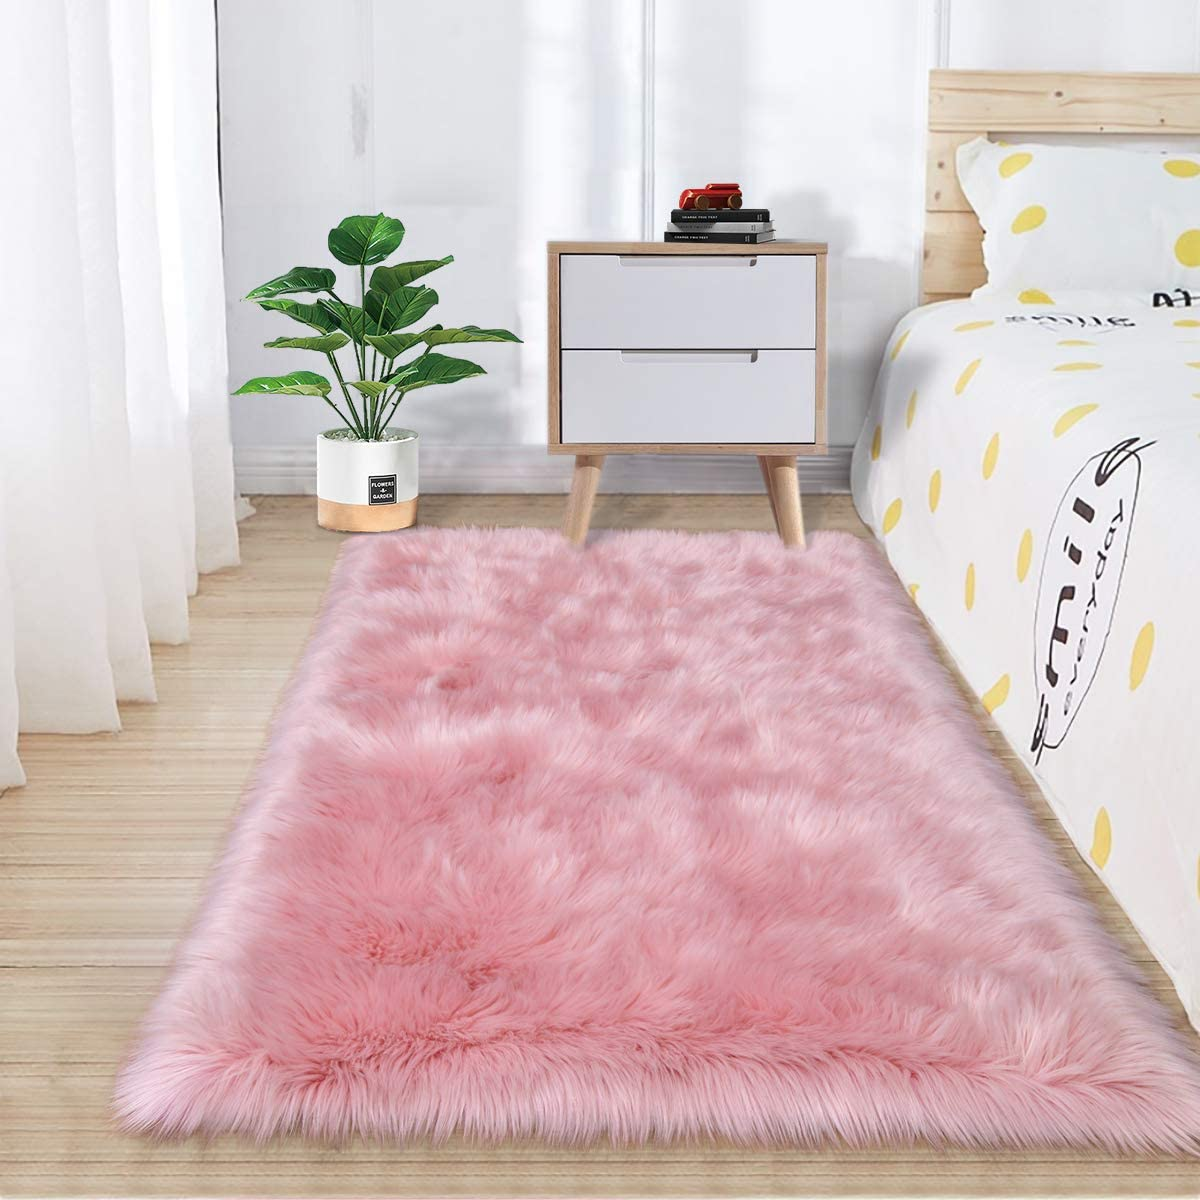 Zareas Super Soft Fluffy Bedroom Rugs, Luxurious Plush Faux Fur Sheepskin Area Rugs for Living Room Indoor Floor Couch Chair Vanity Home Decor Nursery Kids Girls Shaggy Carpet, Pink (2 x 3 Feet)